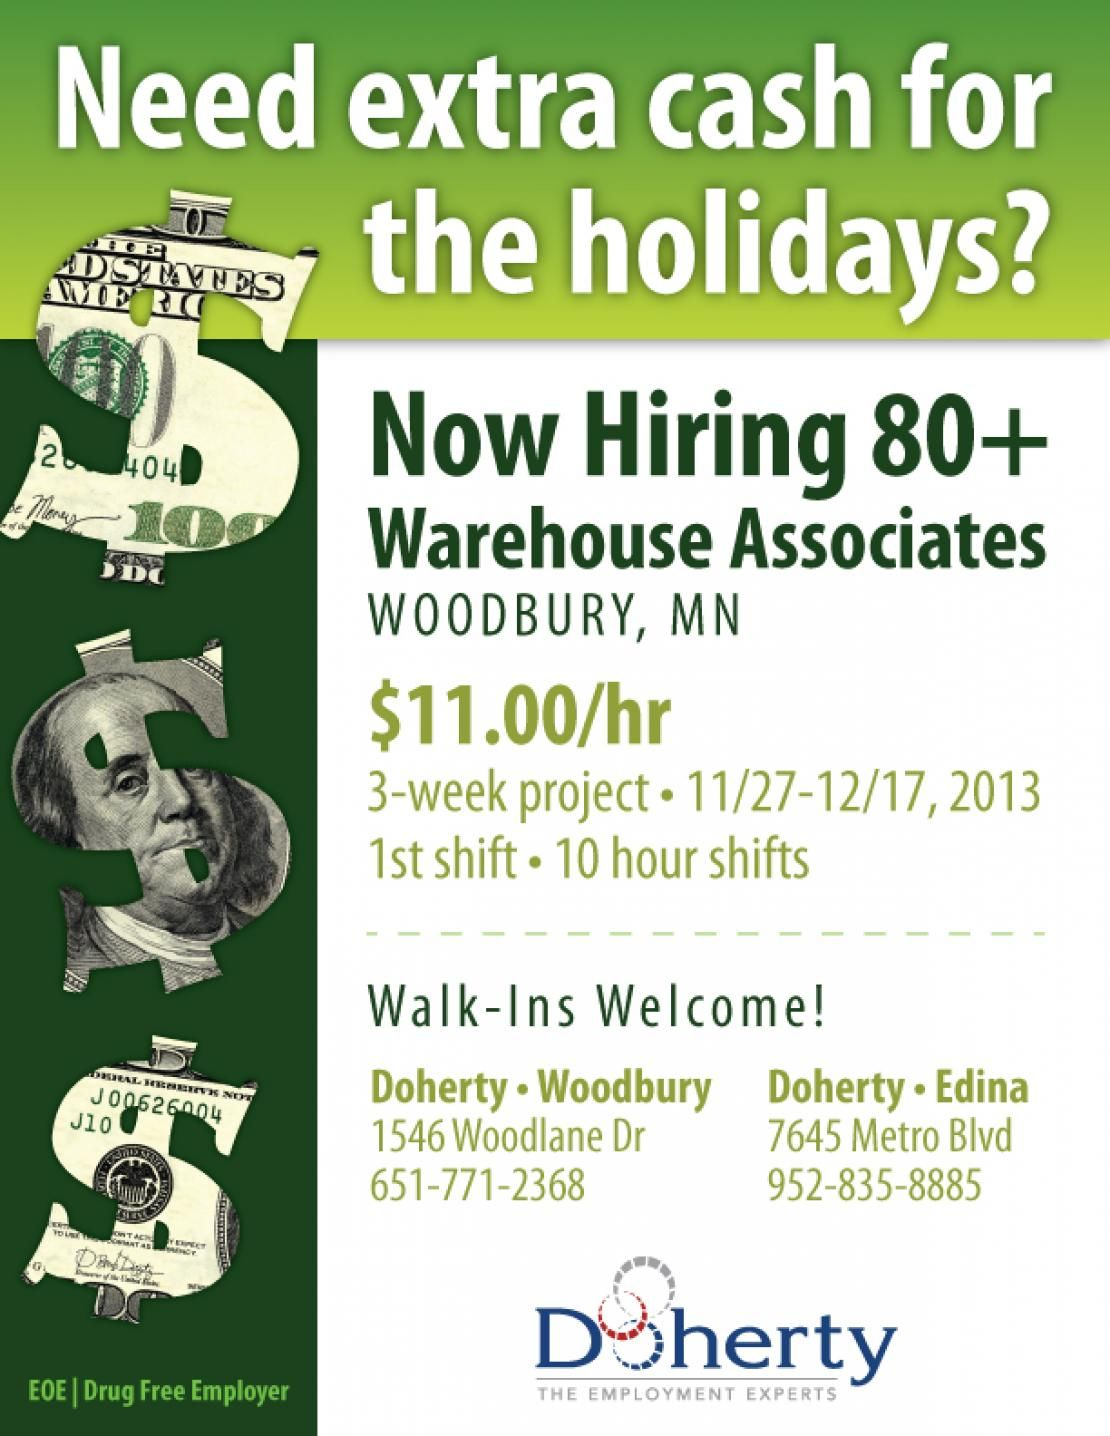 Now hiring 80+ warehouse associates in Woodbury! First